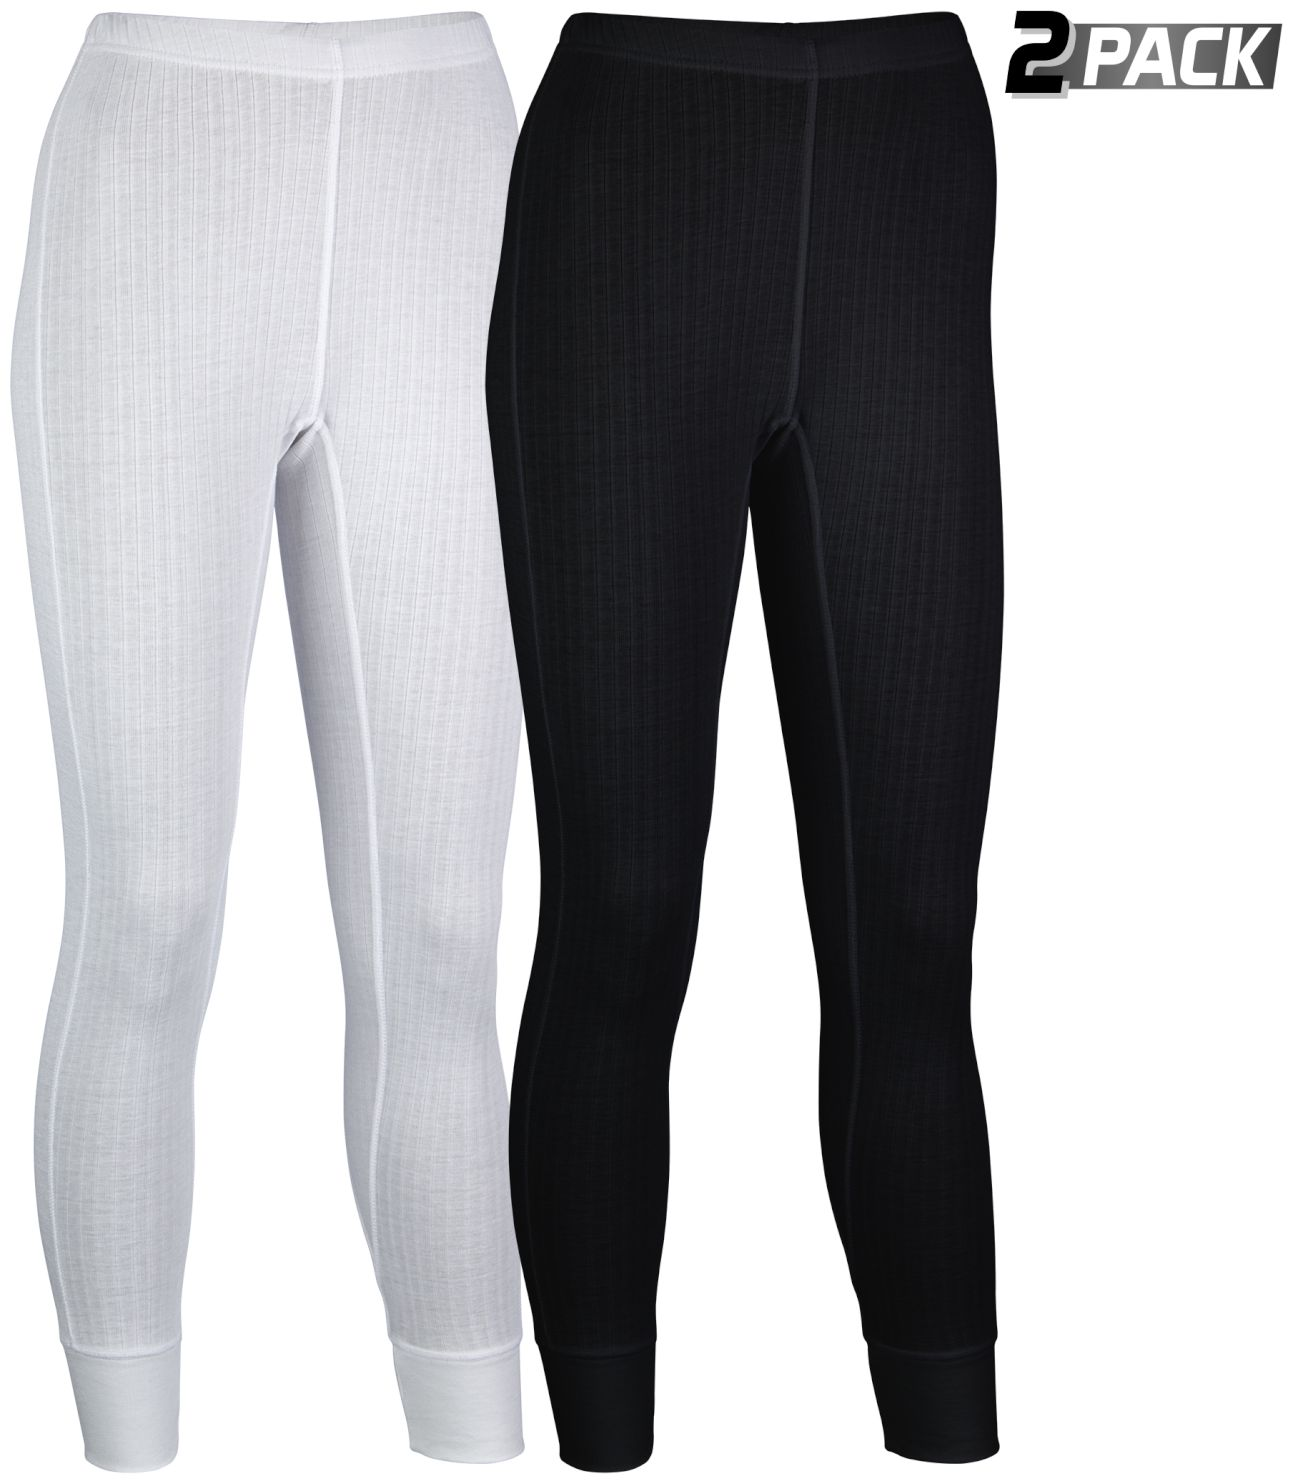 43117f2db 0709 - Thermal Pants Women • 2-Pack • - Design, development and ...